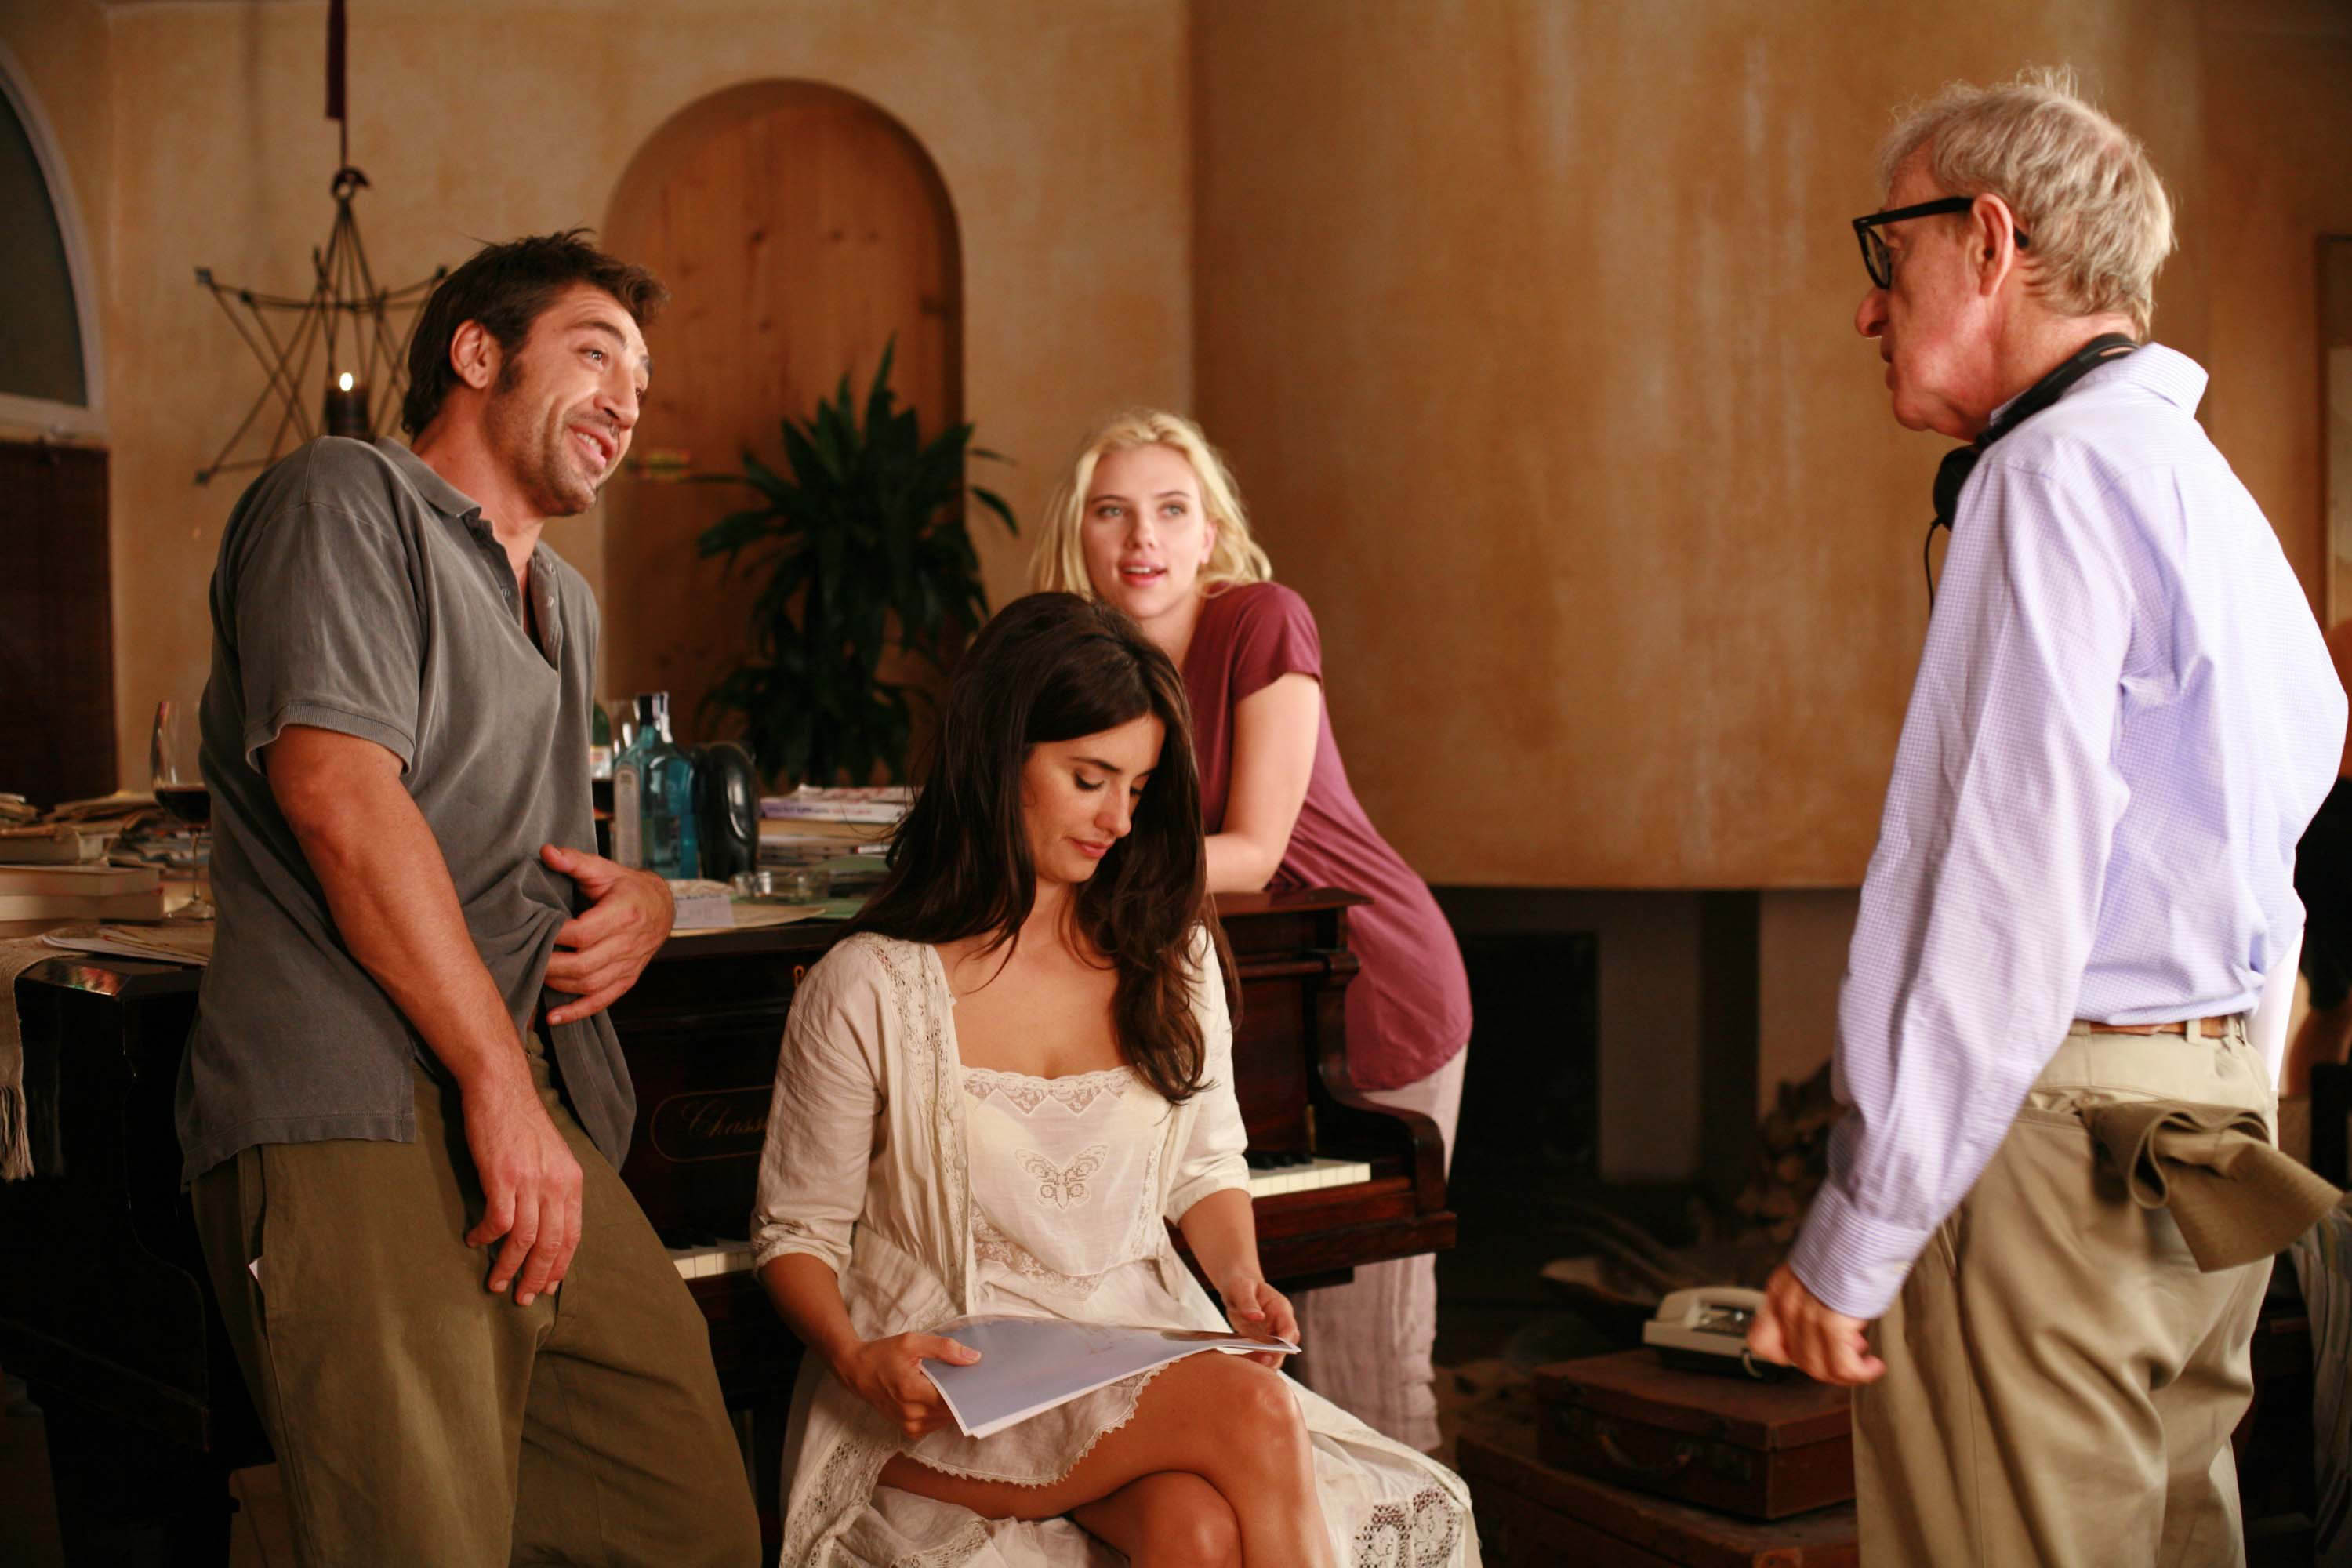 Director Woody Allen, right, is seen speaking to actors, from left, Javier Bardem, Penelope Cruz, and Scarlett Johansson on the set of 'Vicky Cristina...